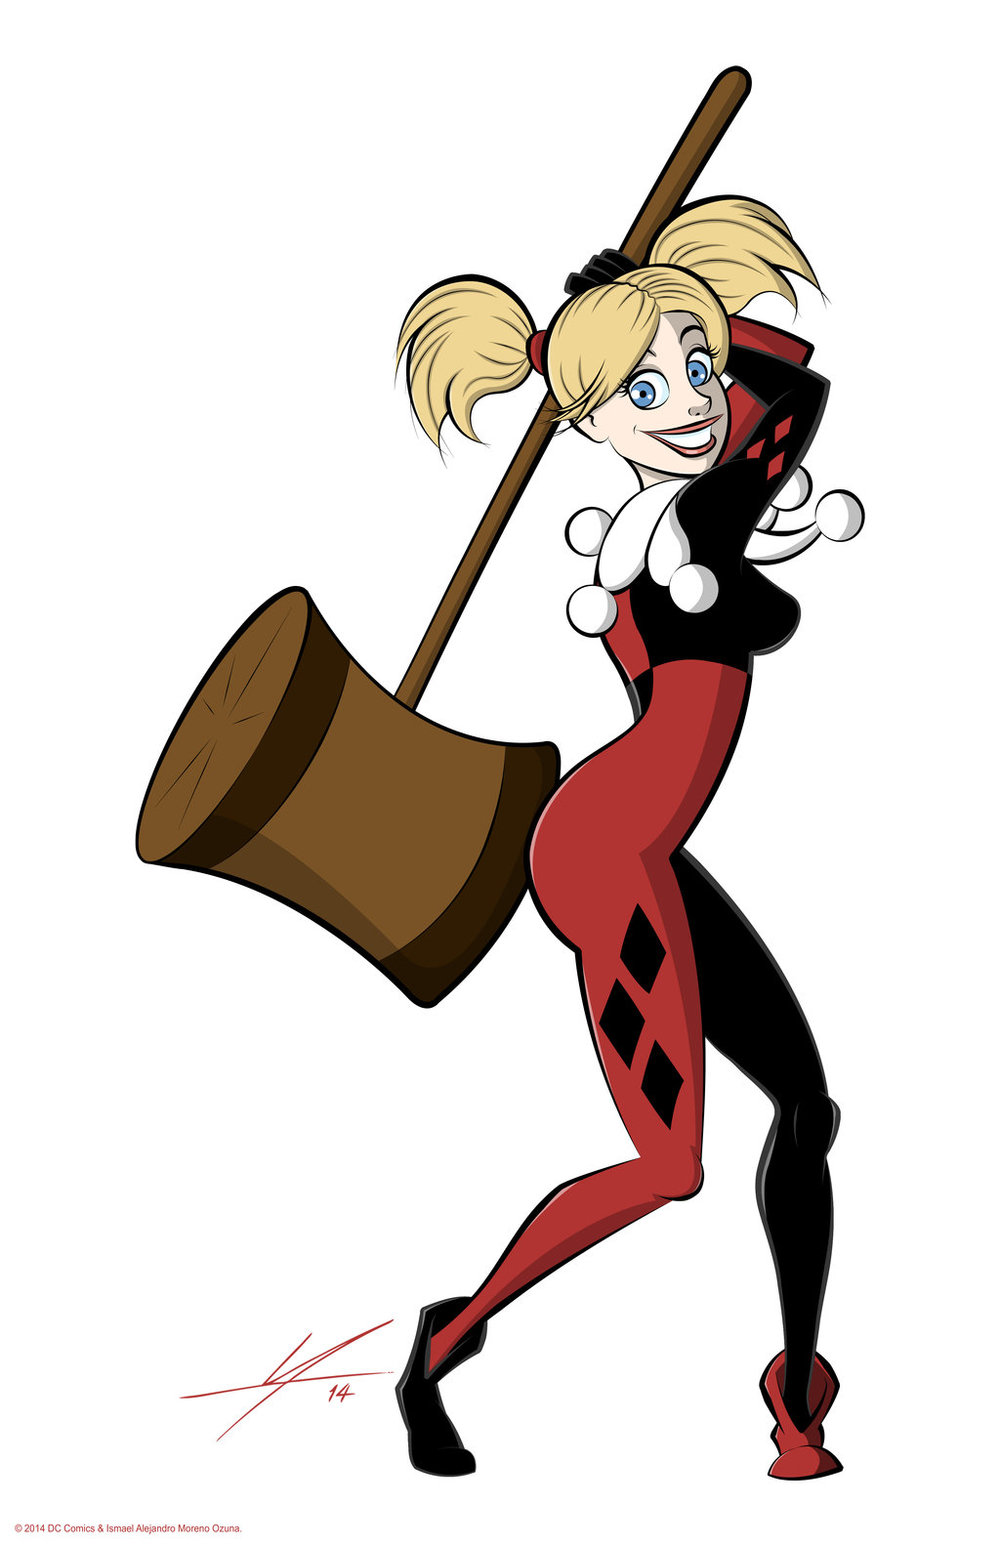 Harley Quinn Fan Art by IAMO